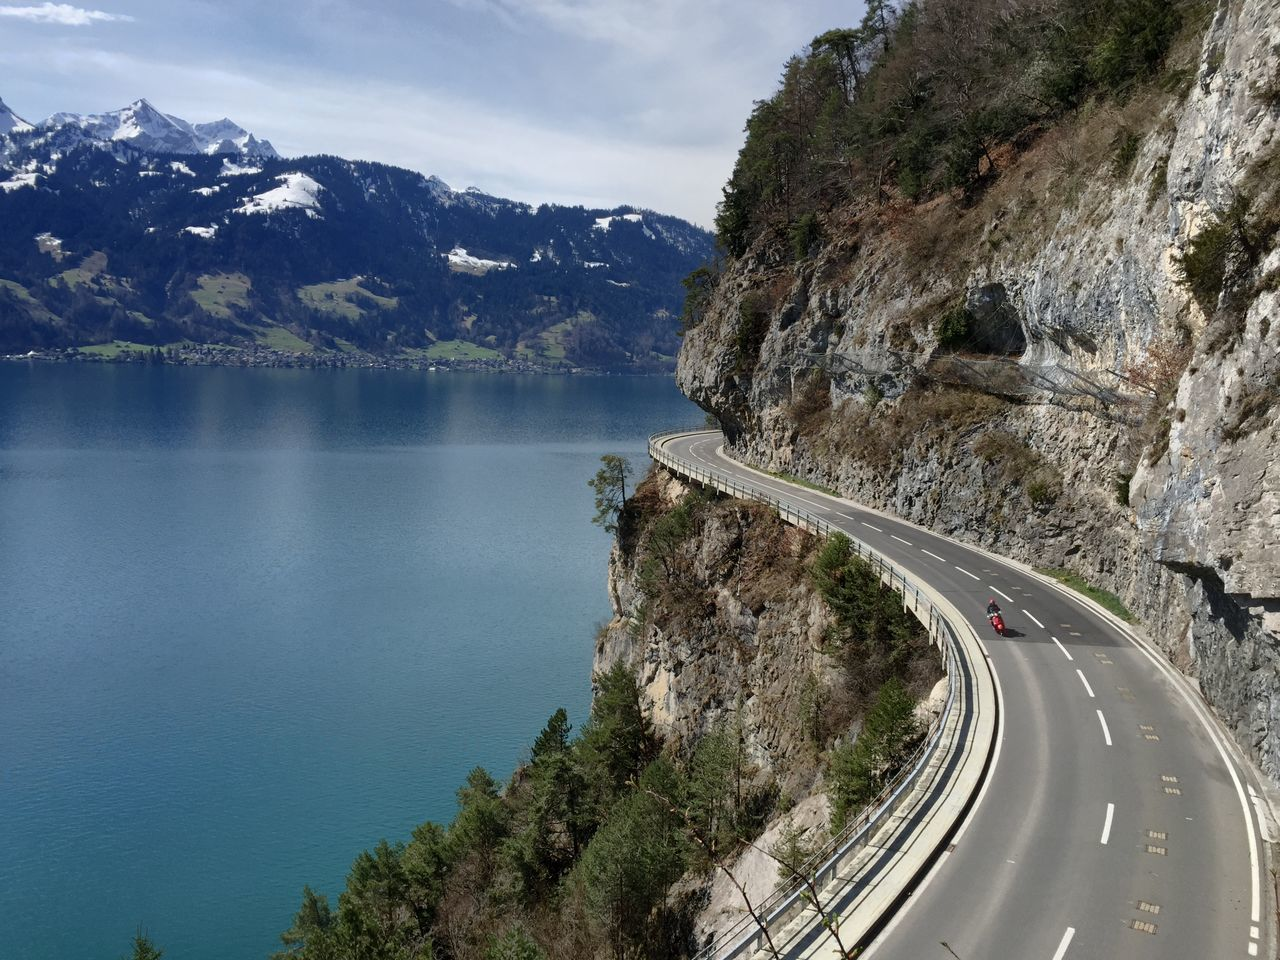 Beauty In Nature Car Curve Day High Angle View Landscape Mode Of Transport Mountain Mountain Range Nature No People Outdoors Road Road Trip Scenics Sky The Way Forward Transportation Tree Winding Road